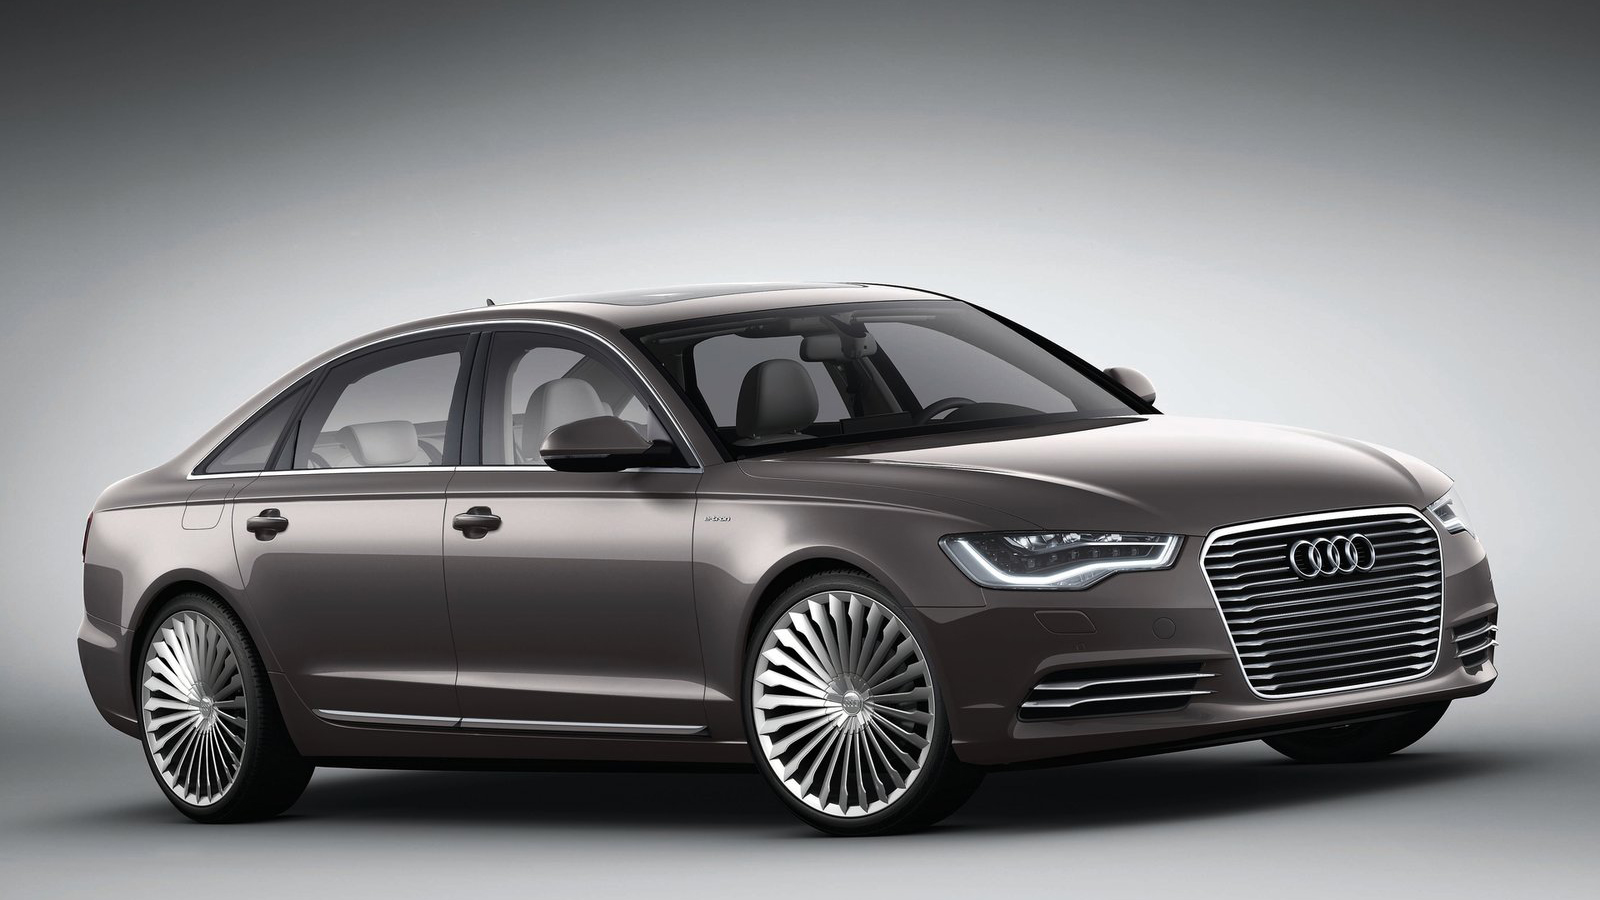 Audi A6 L E Tron Hd Wallpapers The World Of Free Wallpaper - Medium